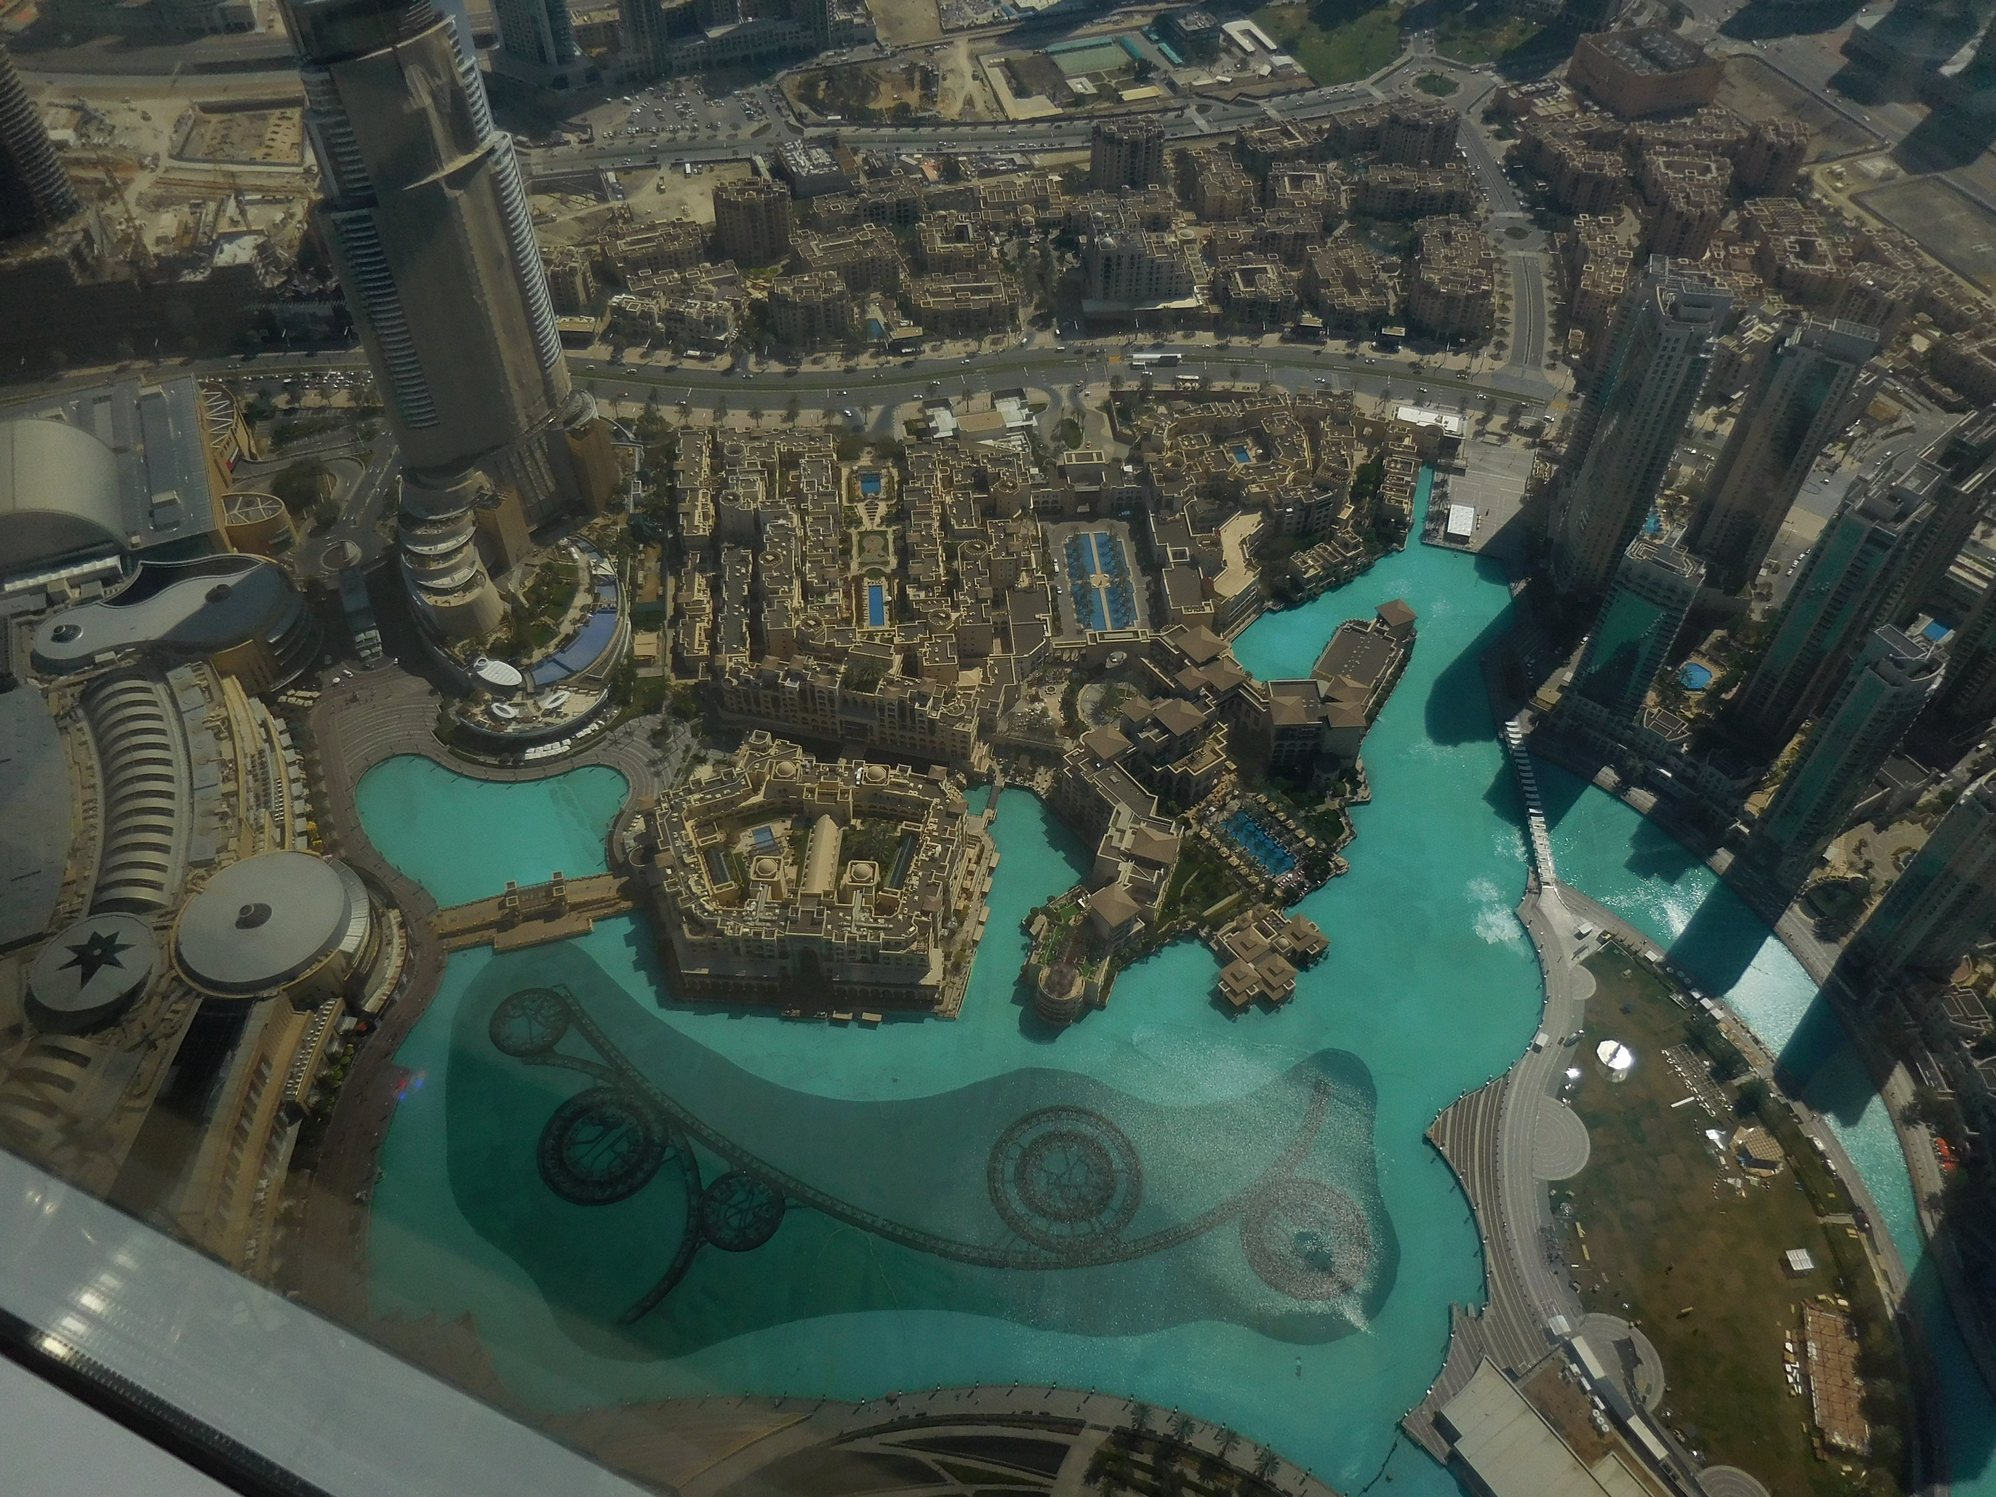 Dubai, Burj Khalifa, Bellagio Fountains, Observatory, UAE